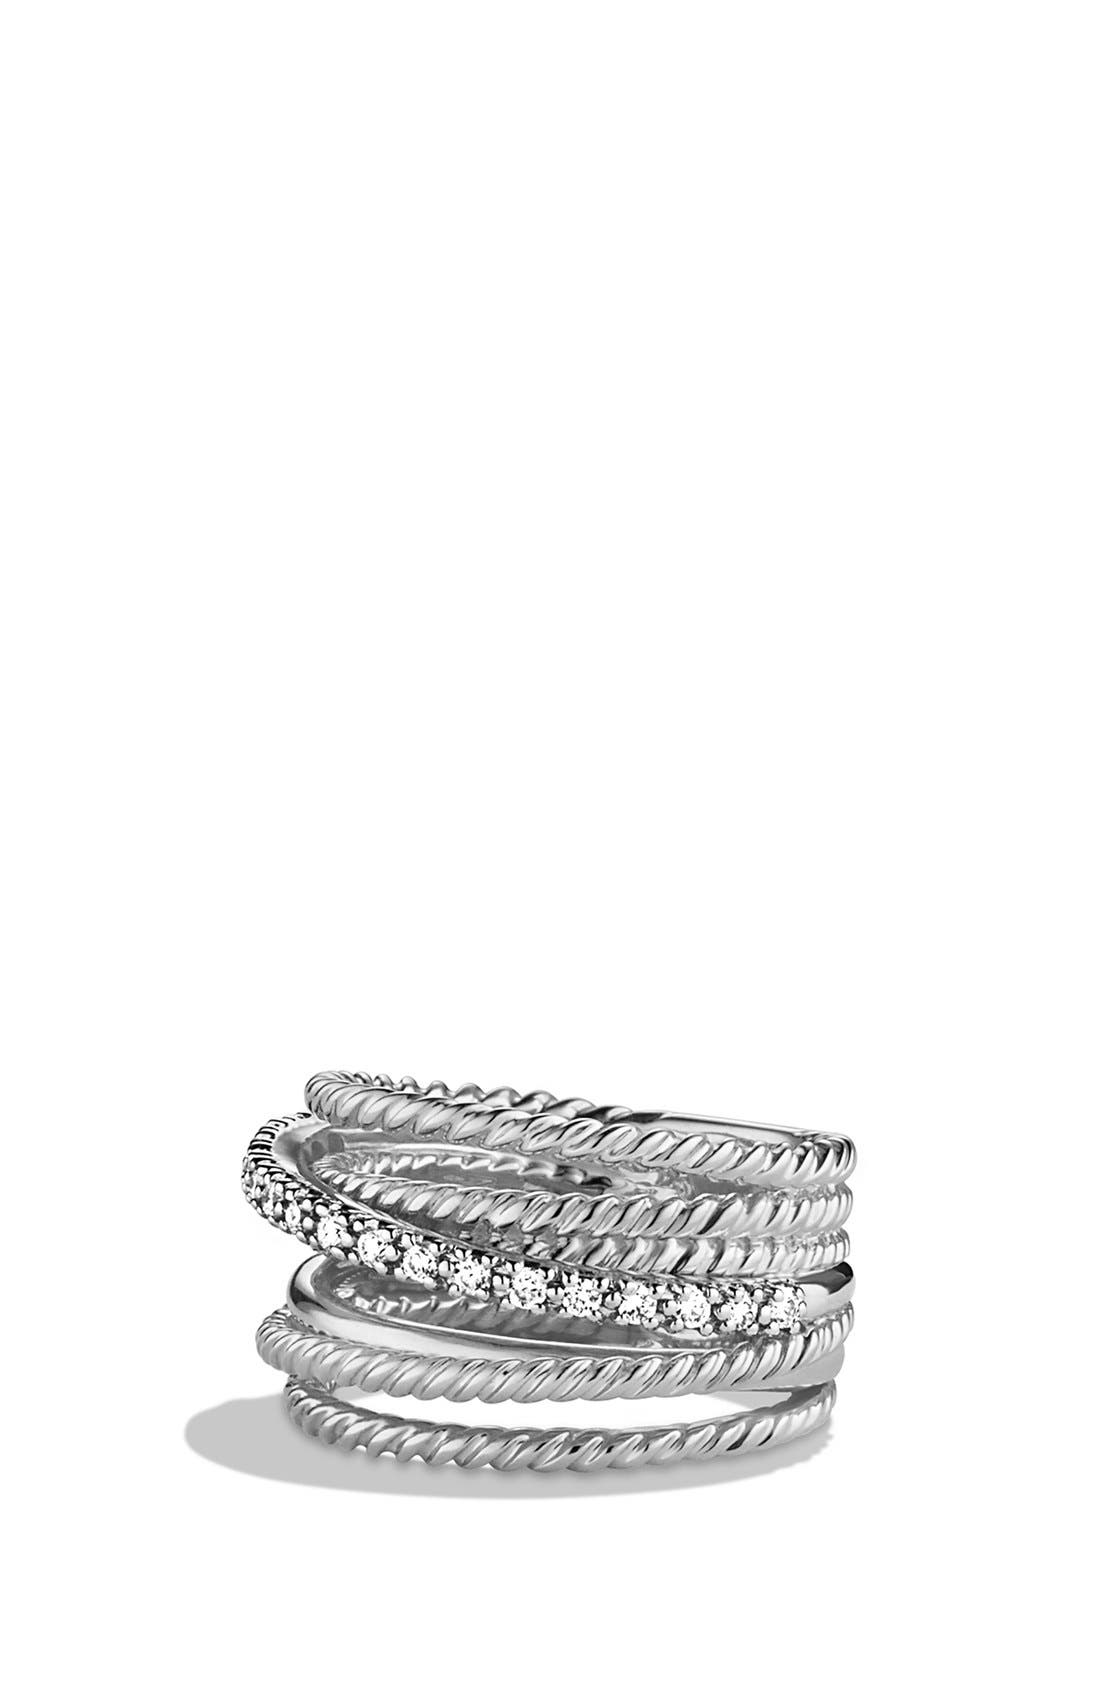 David Yurman 'Crossover' Wide Ring with Diamonds